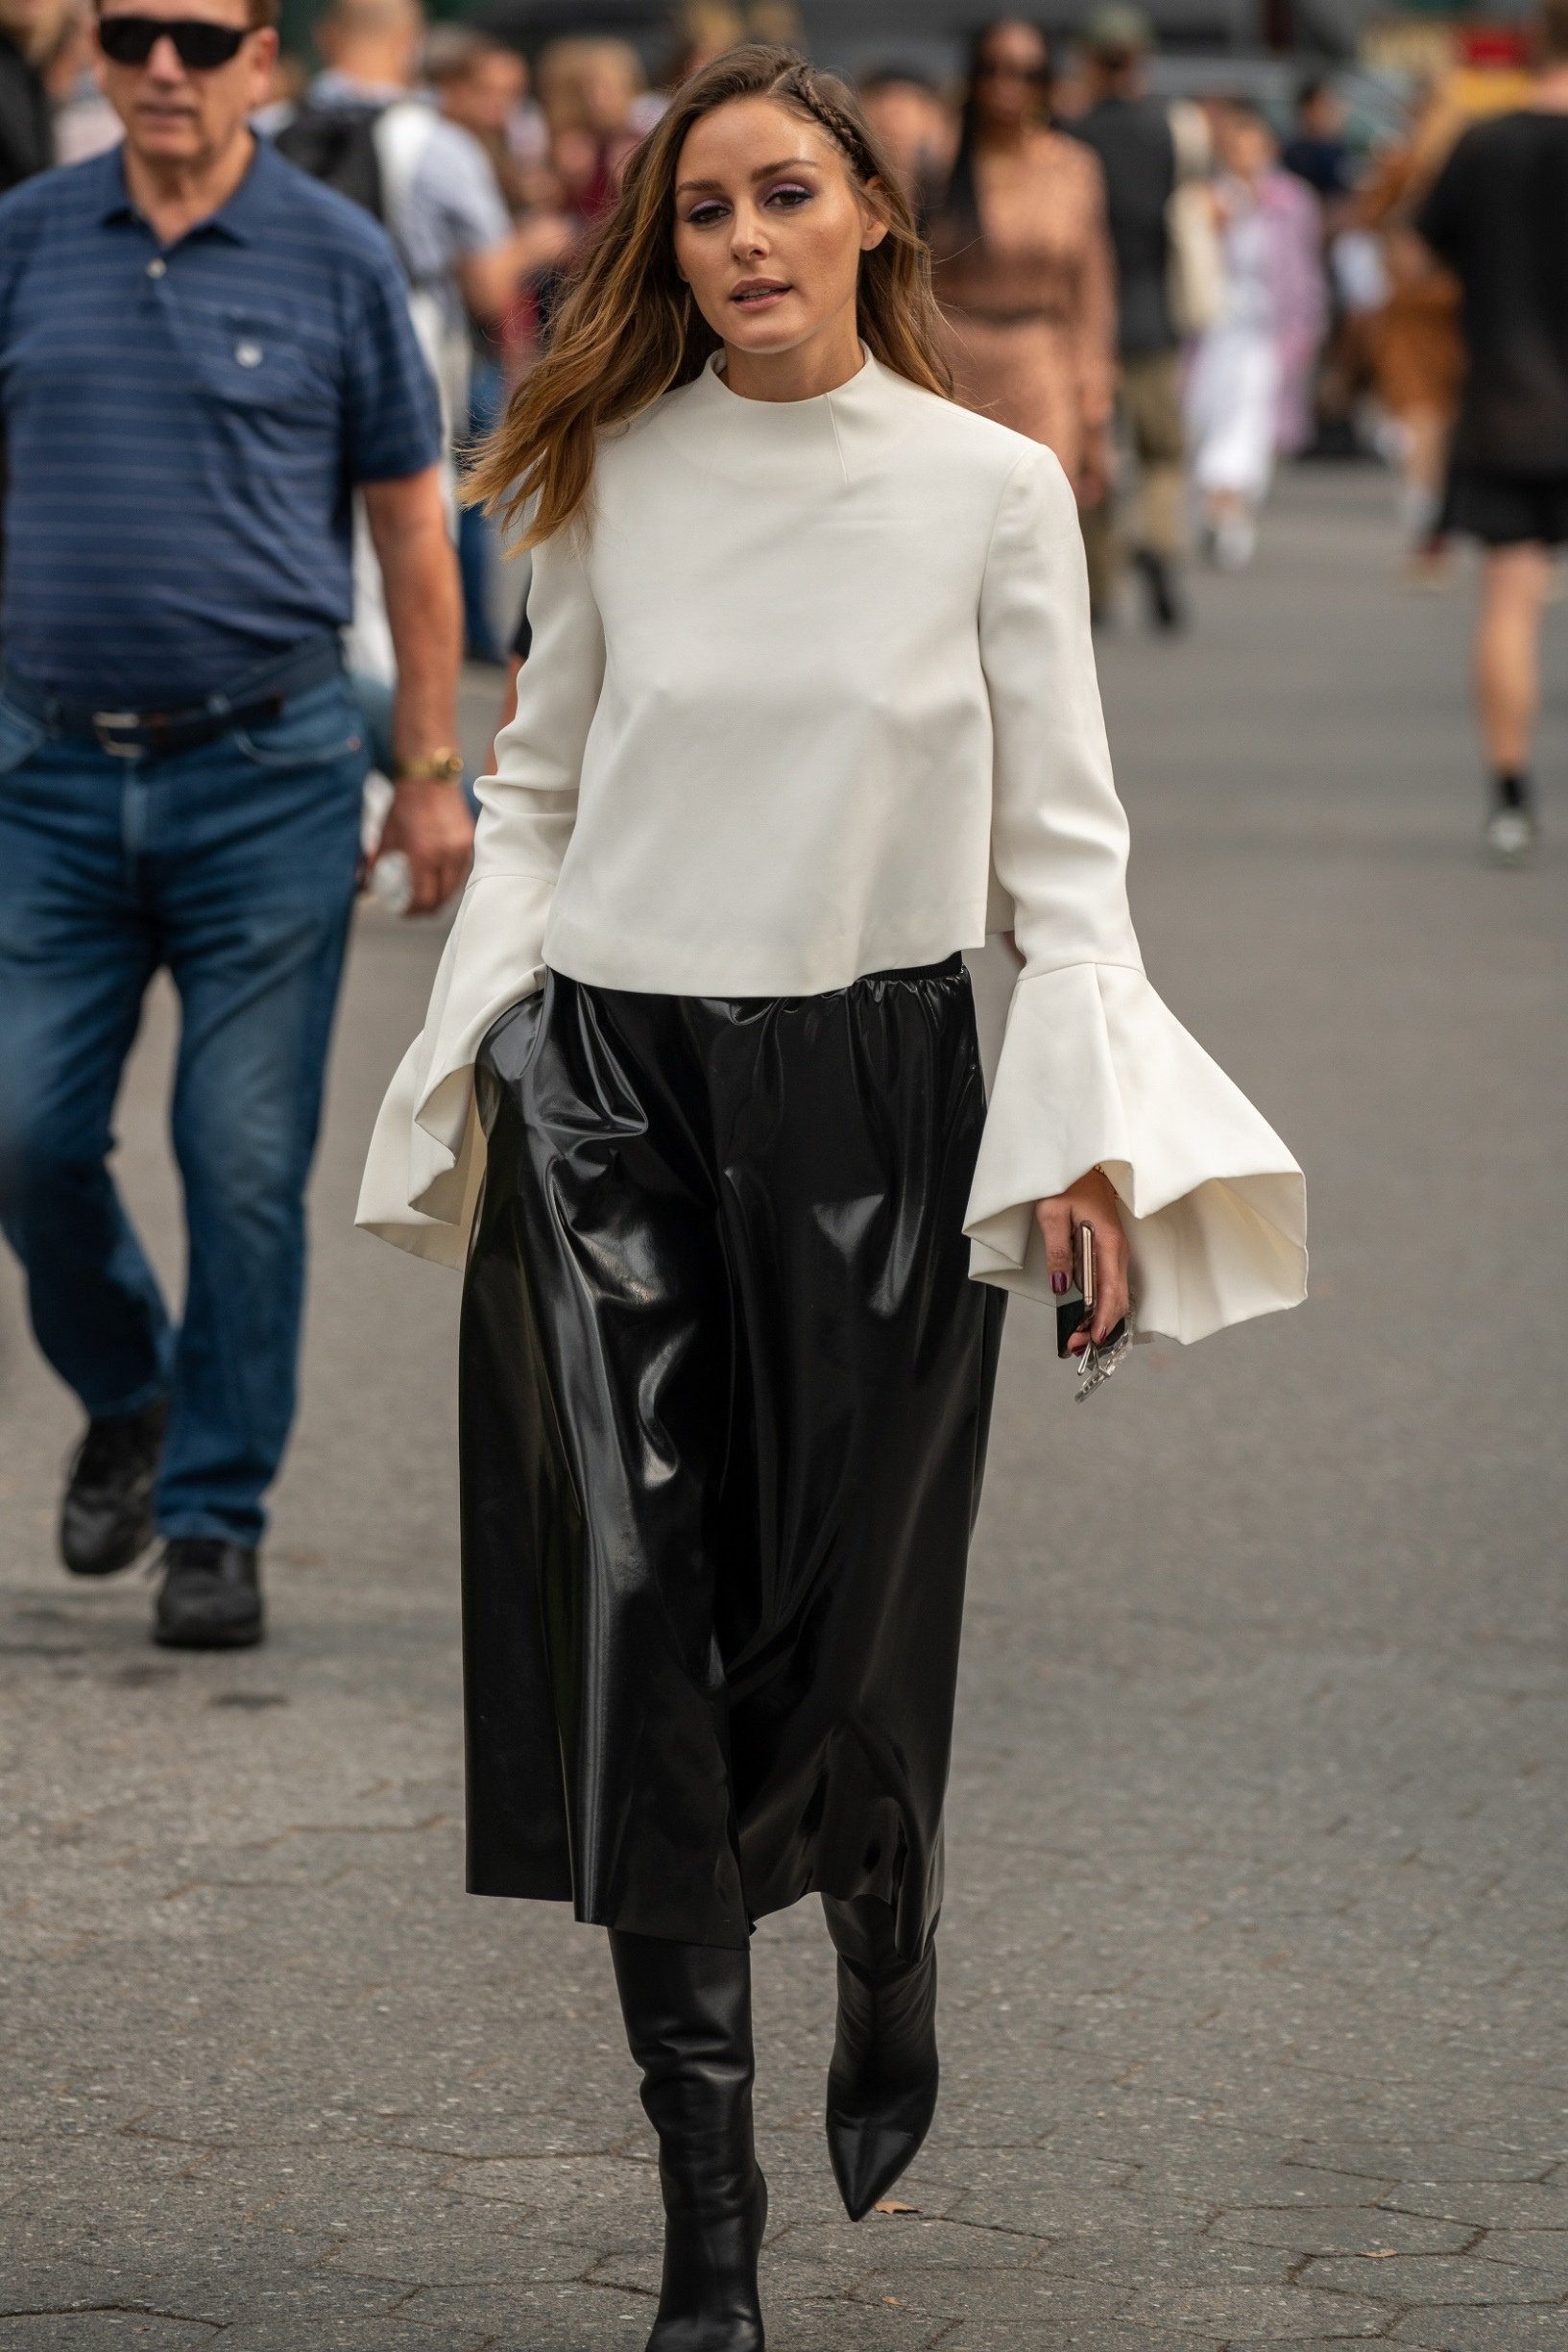 NEW YORK, NY - SEPTEMBER 09: Olivia Palermo is seen wearing a cream blouse, a black skirt, and black boots during New York Fashion Week at the Garden of the Battery on September 9, 2019 in New York City. (Photo by David Dee Delgado/Getty Images)